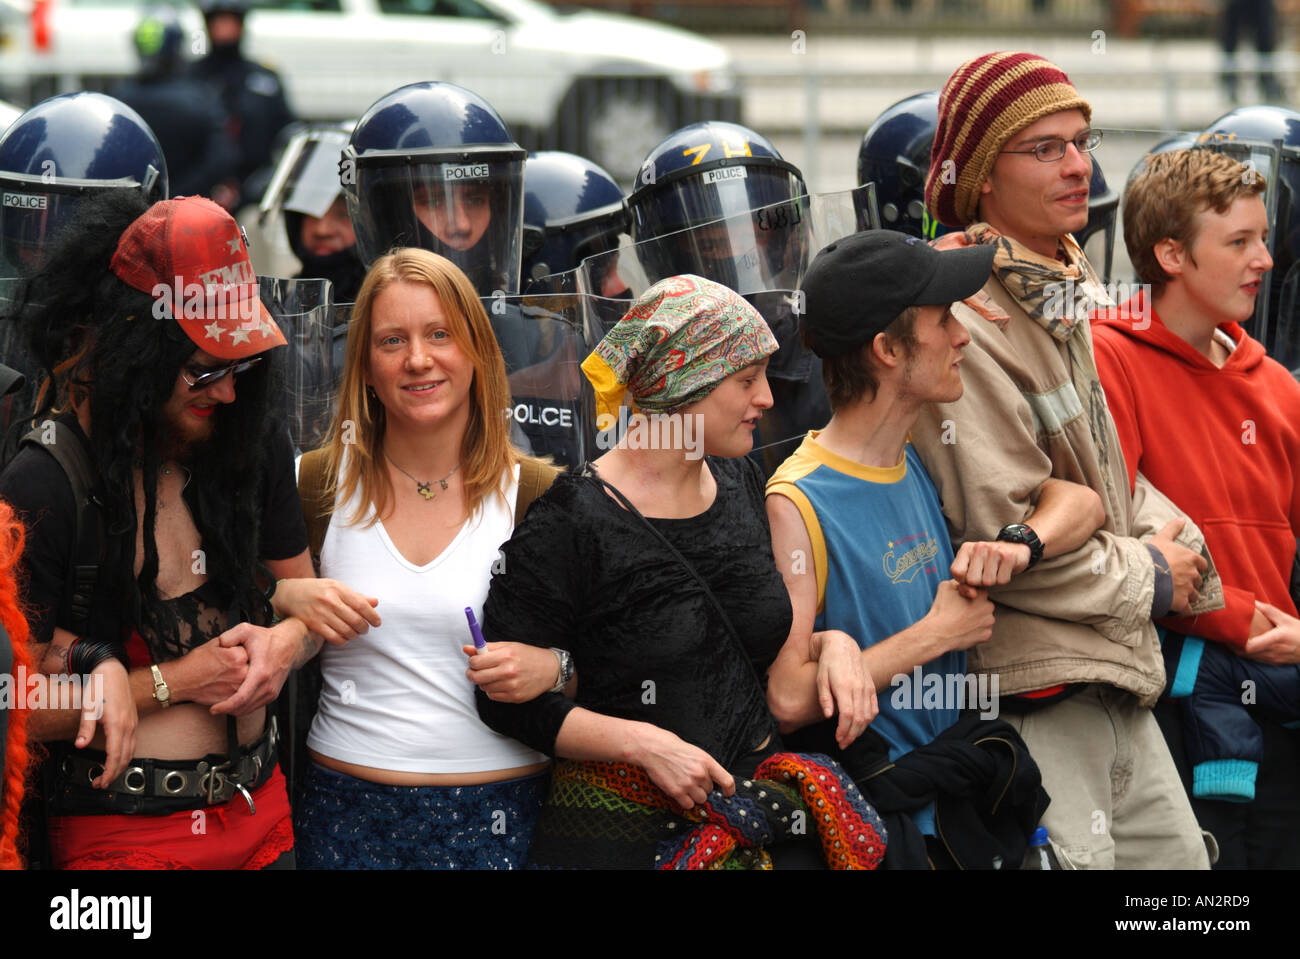 Protesters holding a line against riot police on South St David Street, Edinburgh, Scotland, UK - Stock Image